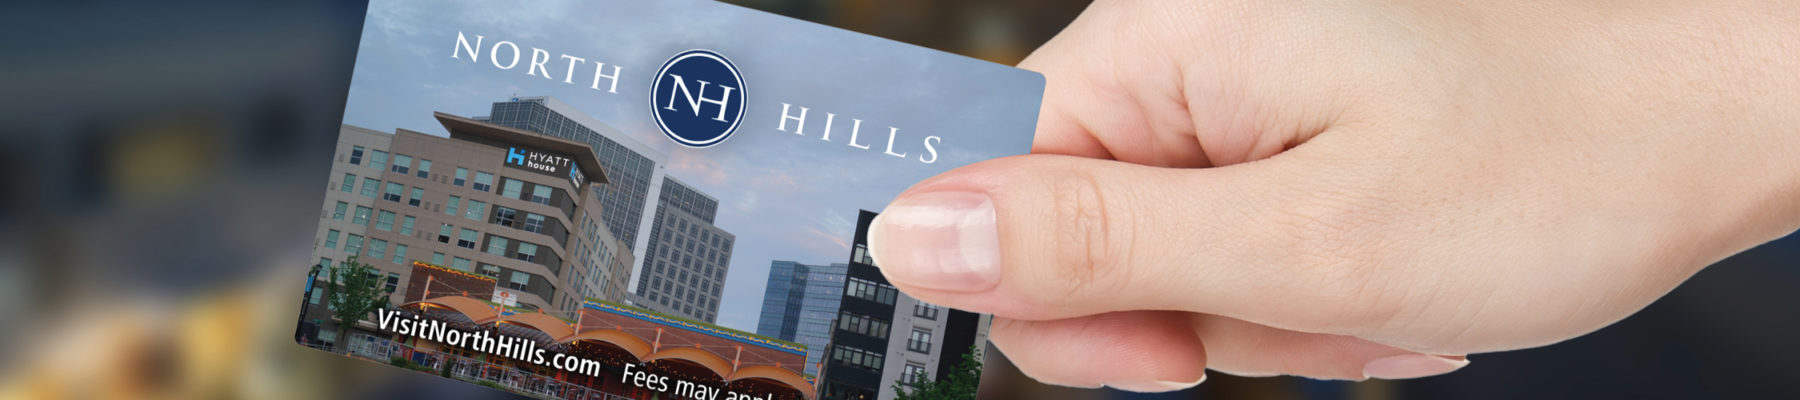 North Hills Gift Cards